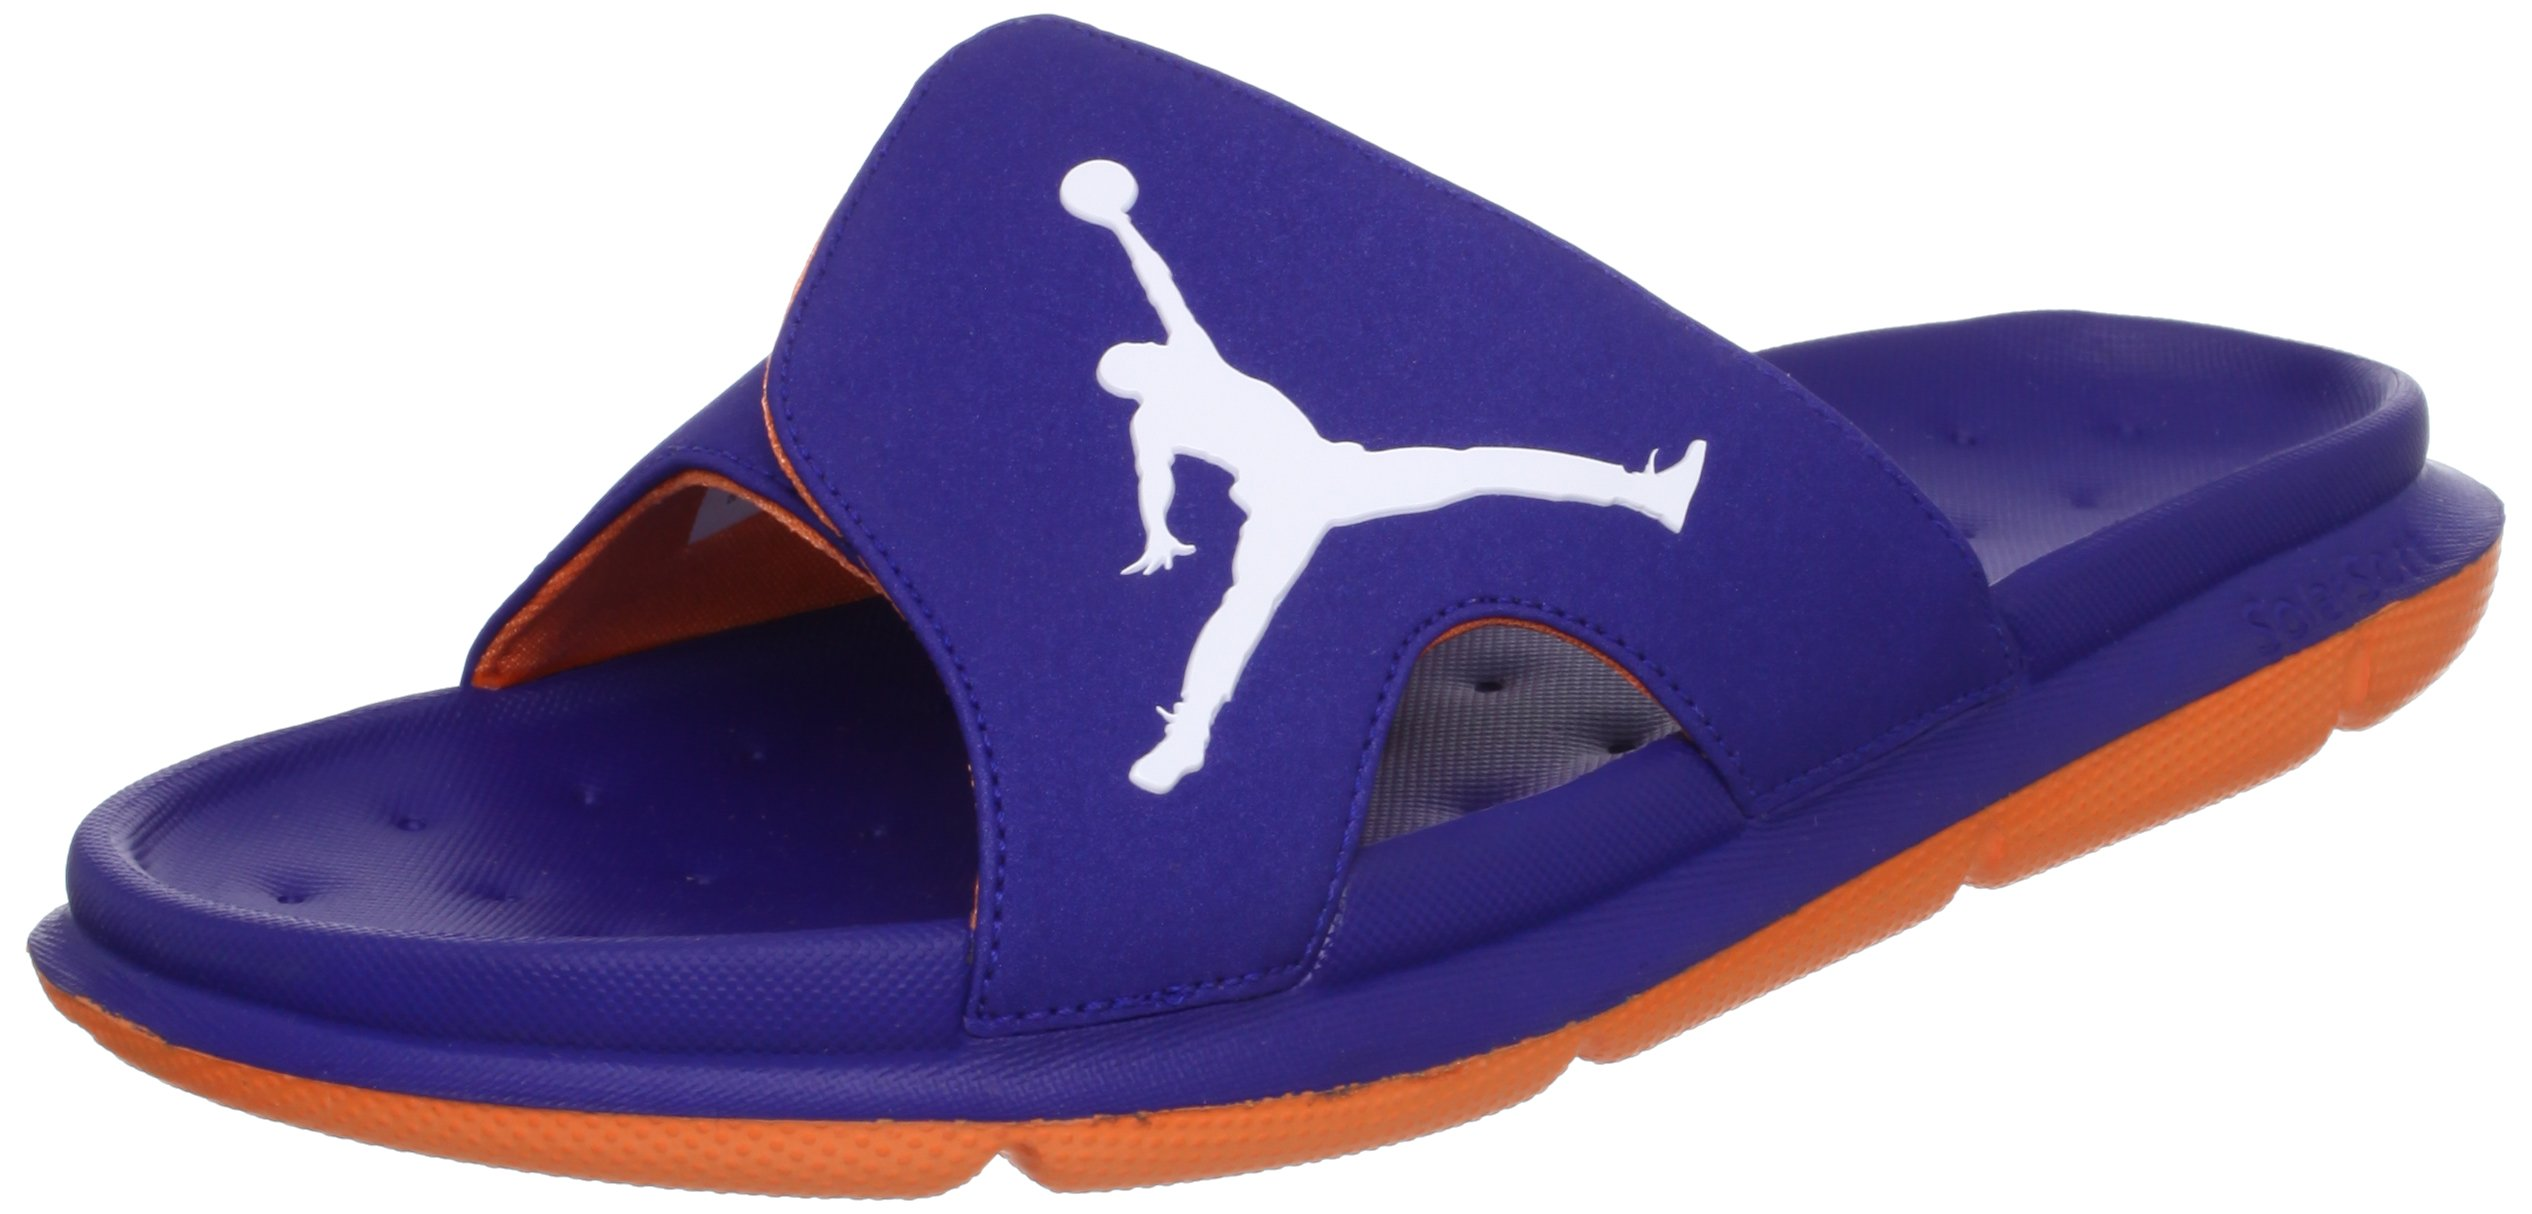 a961c332aa0f Galleon - Nike Men s NIKE JORDAN RCVR SLIDE SELECT SANDALS 9 Men US (DP  ROYAL BLUE WHITE BRIGHT CTRS)